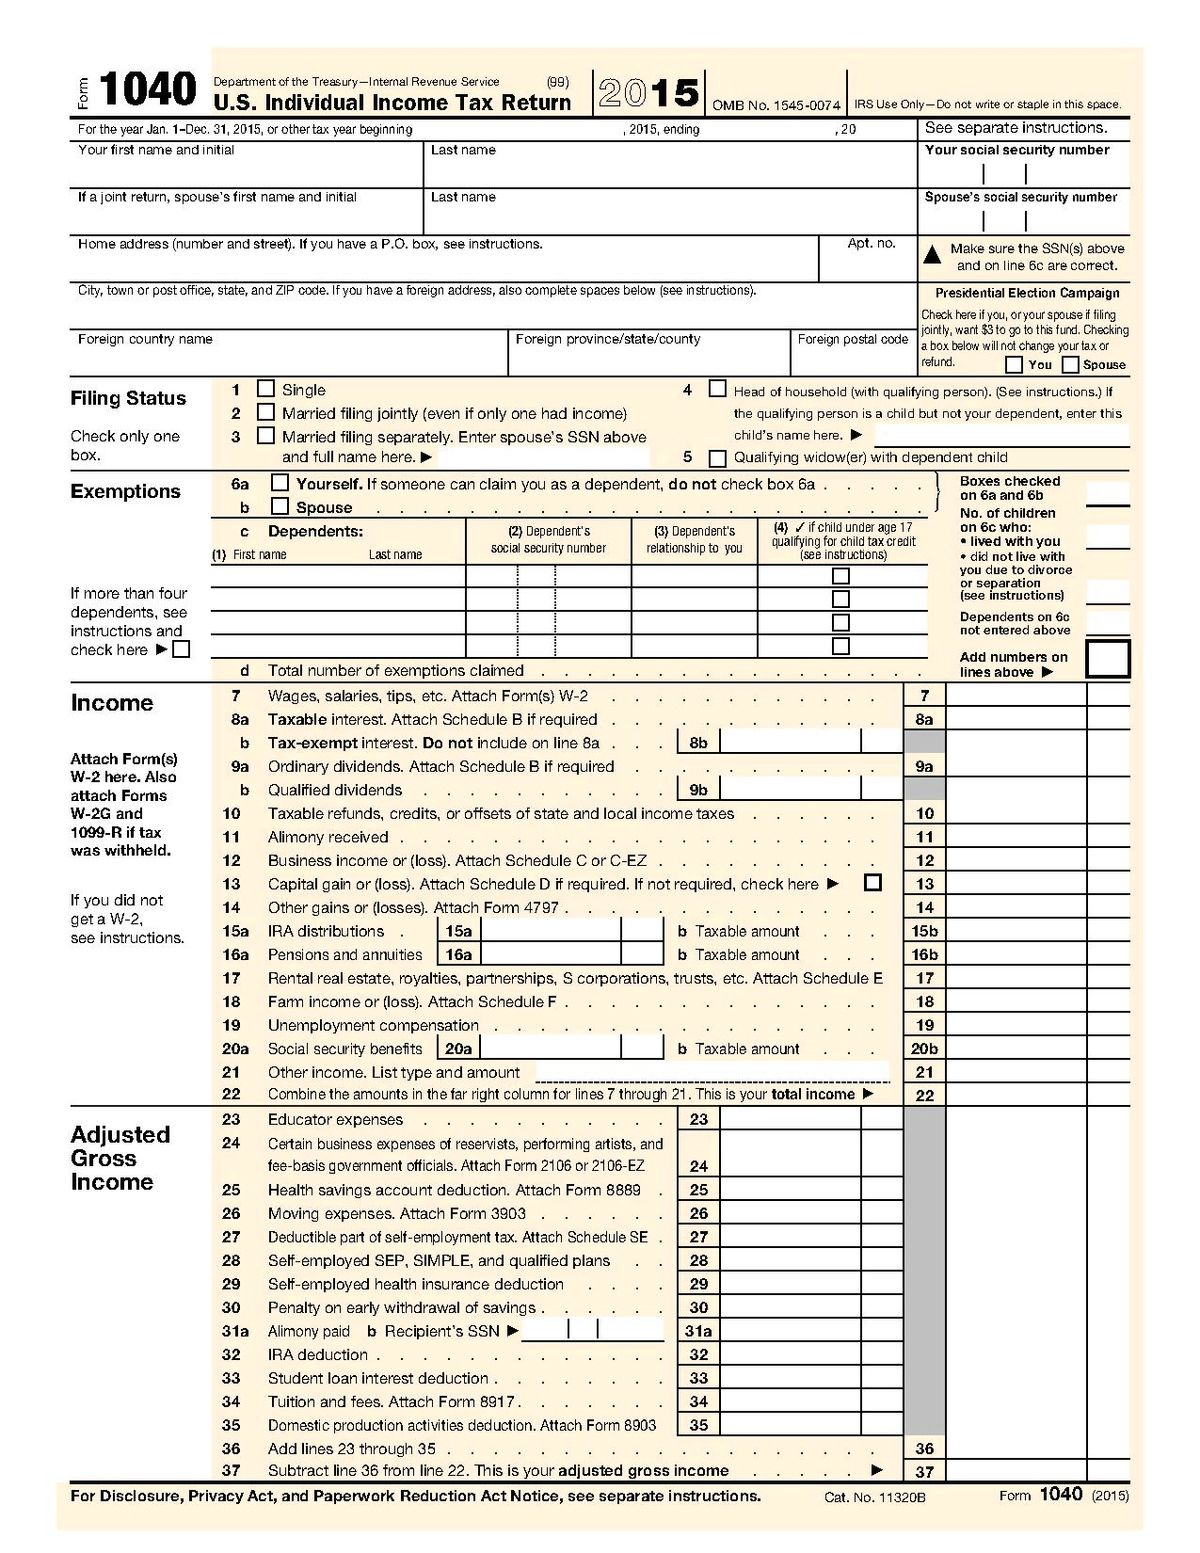 form 1040 refund  form 13 | Federal income tax, Income tax, Income tax return